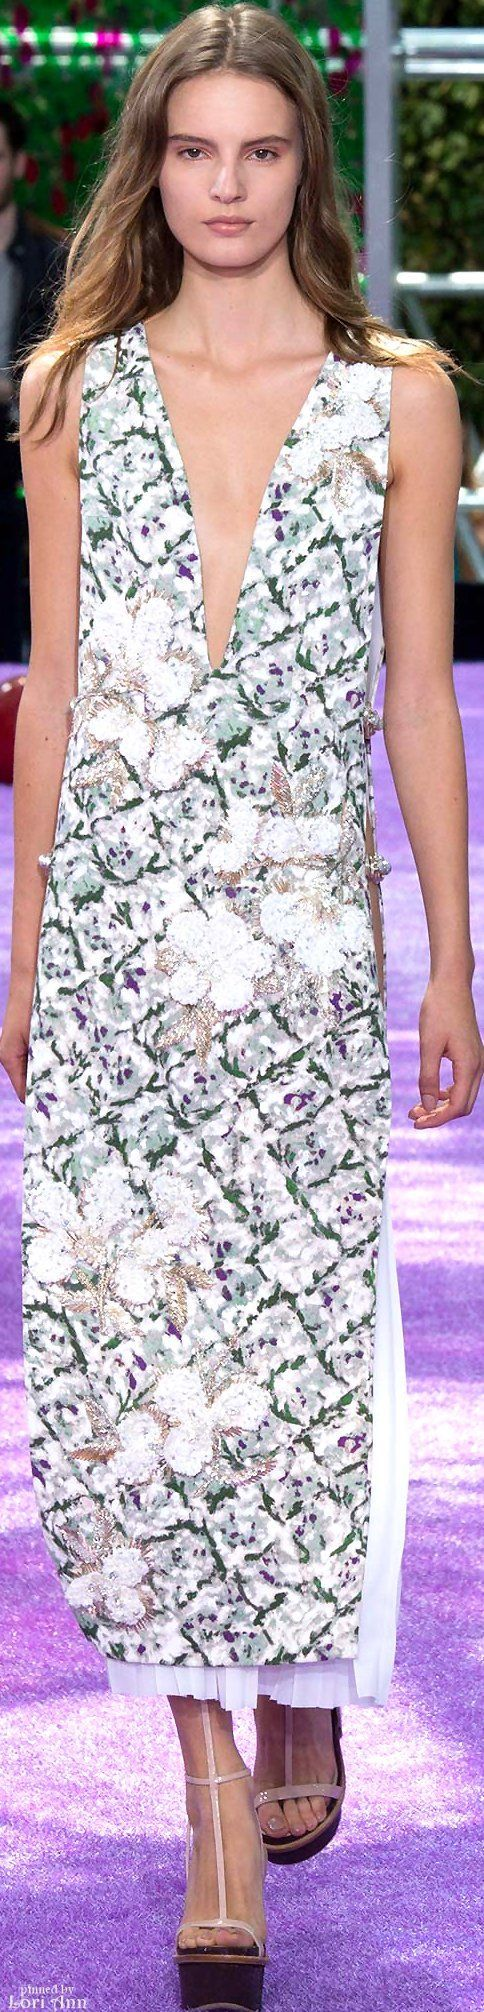 Raf Siimons For Christian Dior Haute Couture Fall/Winter 2015-2016